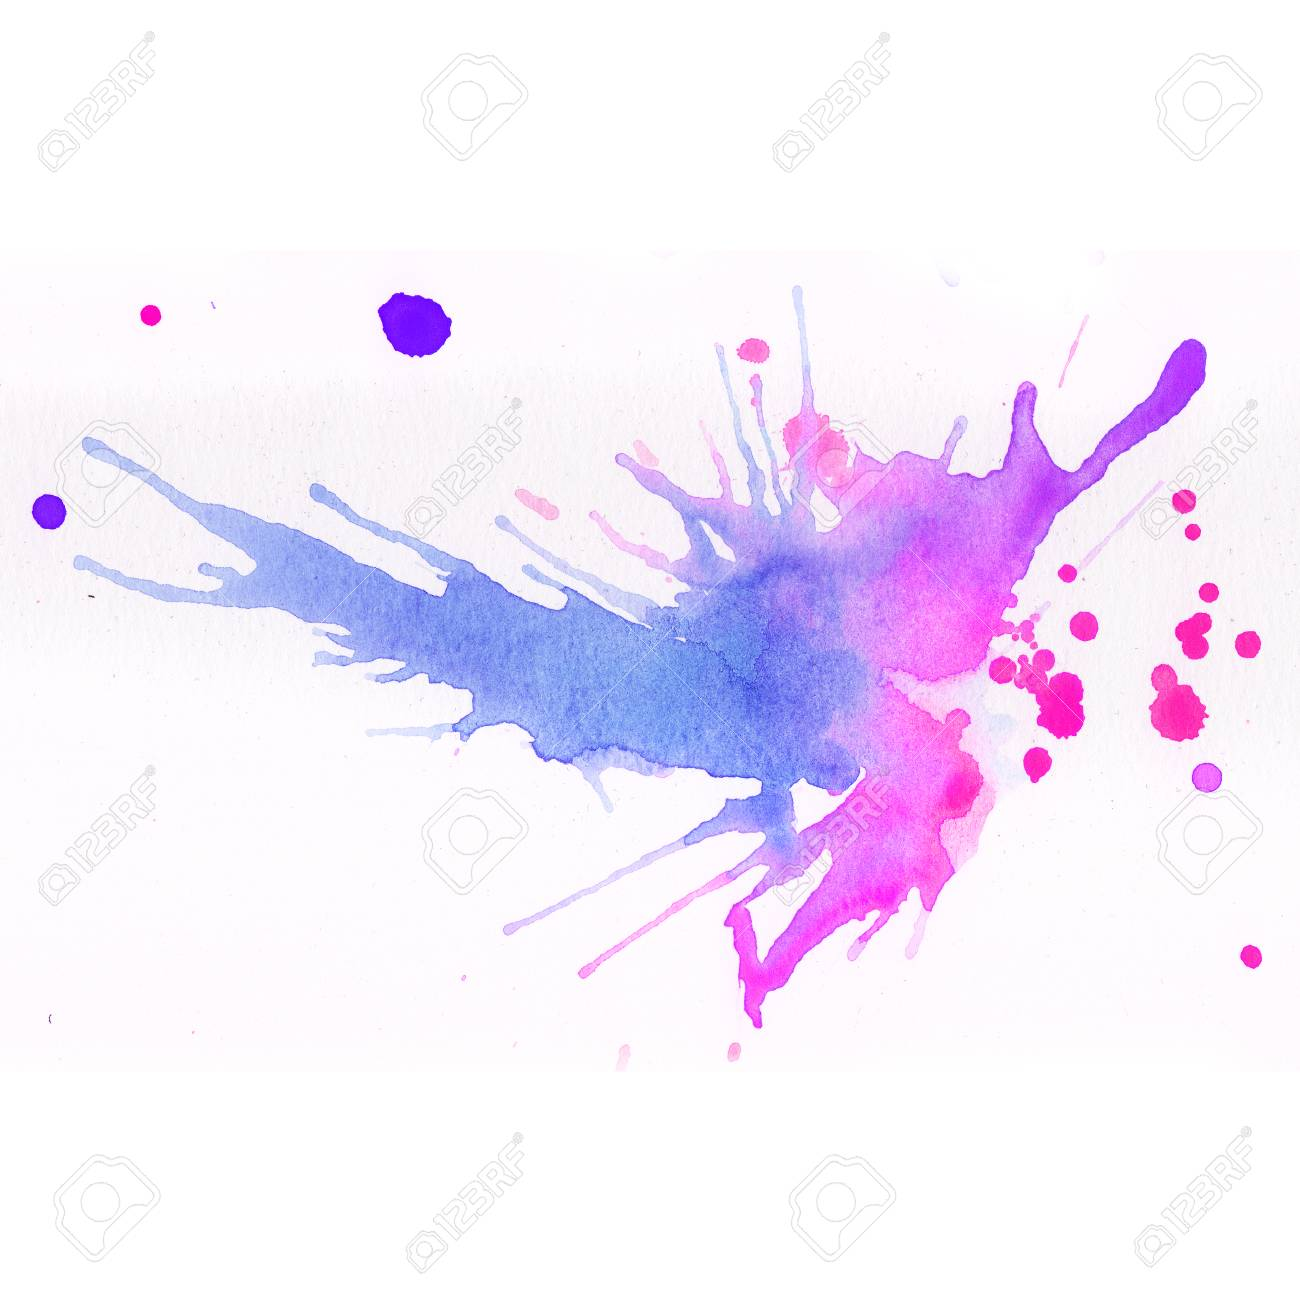 Colorful watercolor splashes over white background pink blue and violet colors stock photo